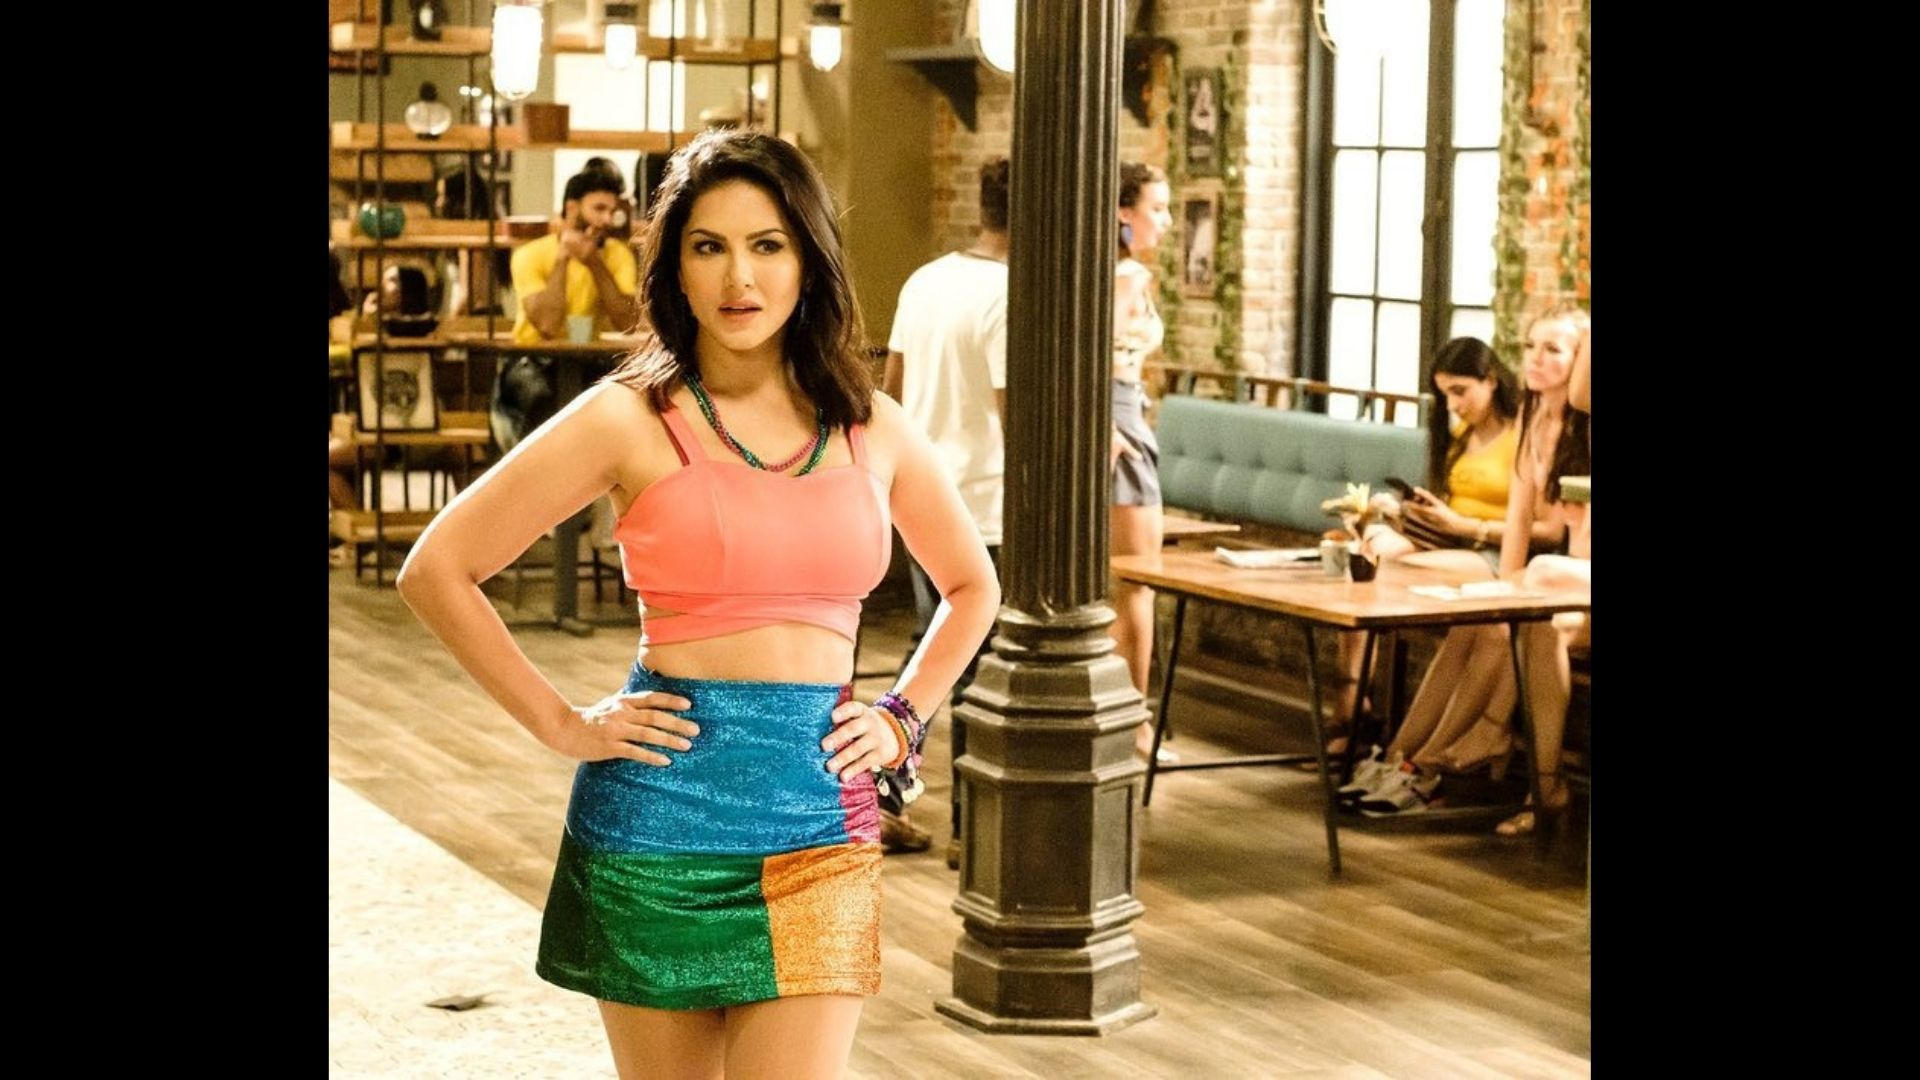 Sunny Leone Shares BTS Photos; Fans Can't Stop Gushing Over The Actress In The Comments Section